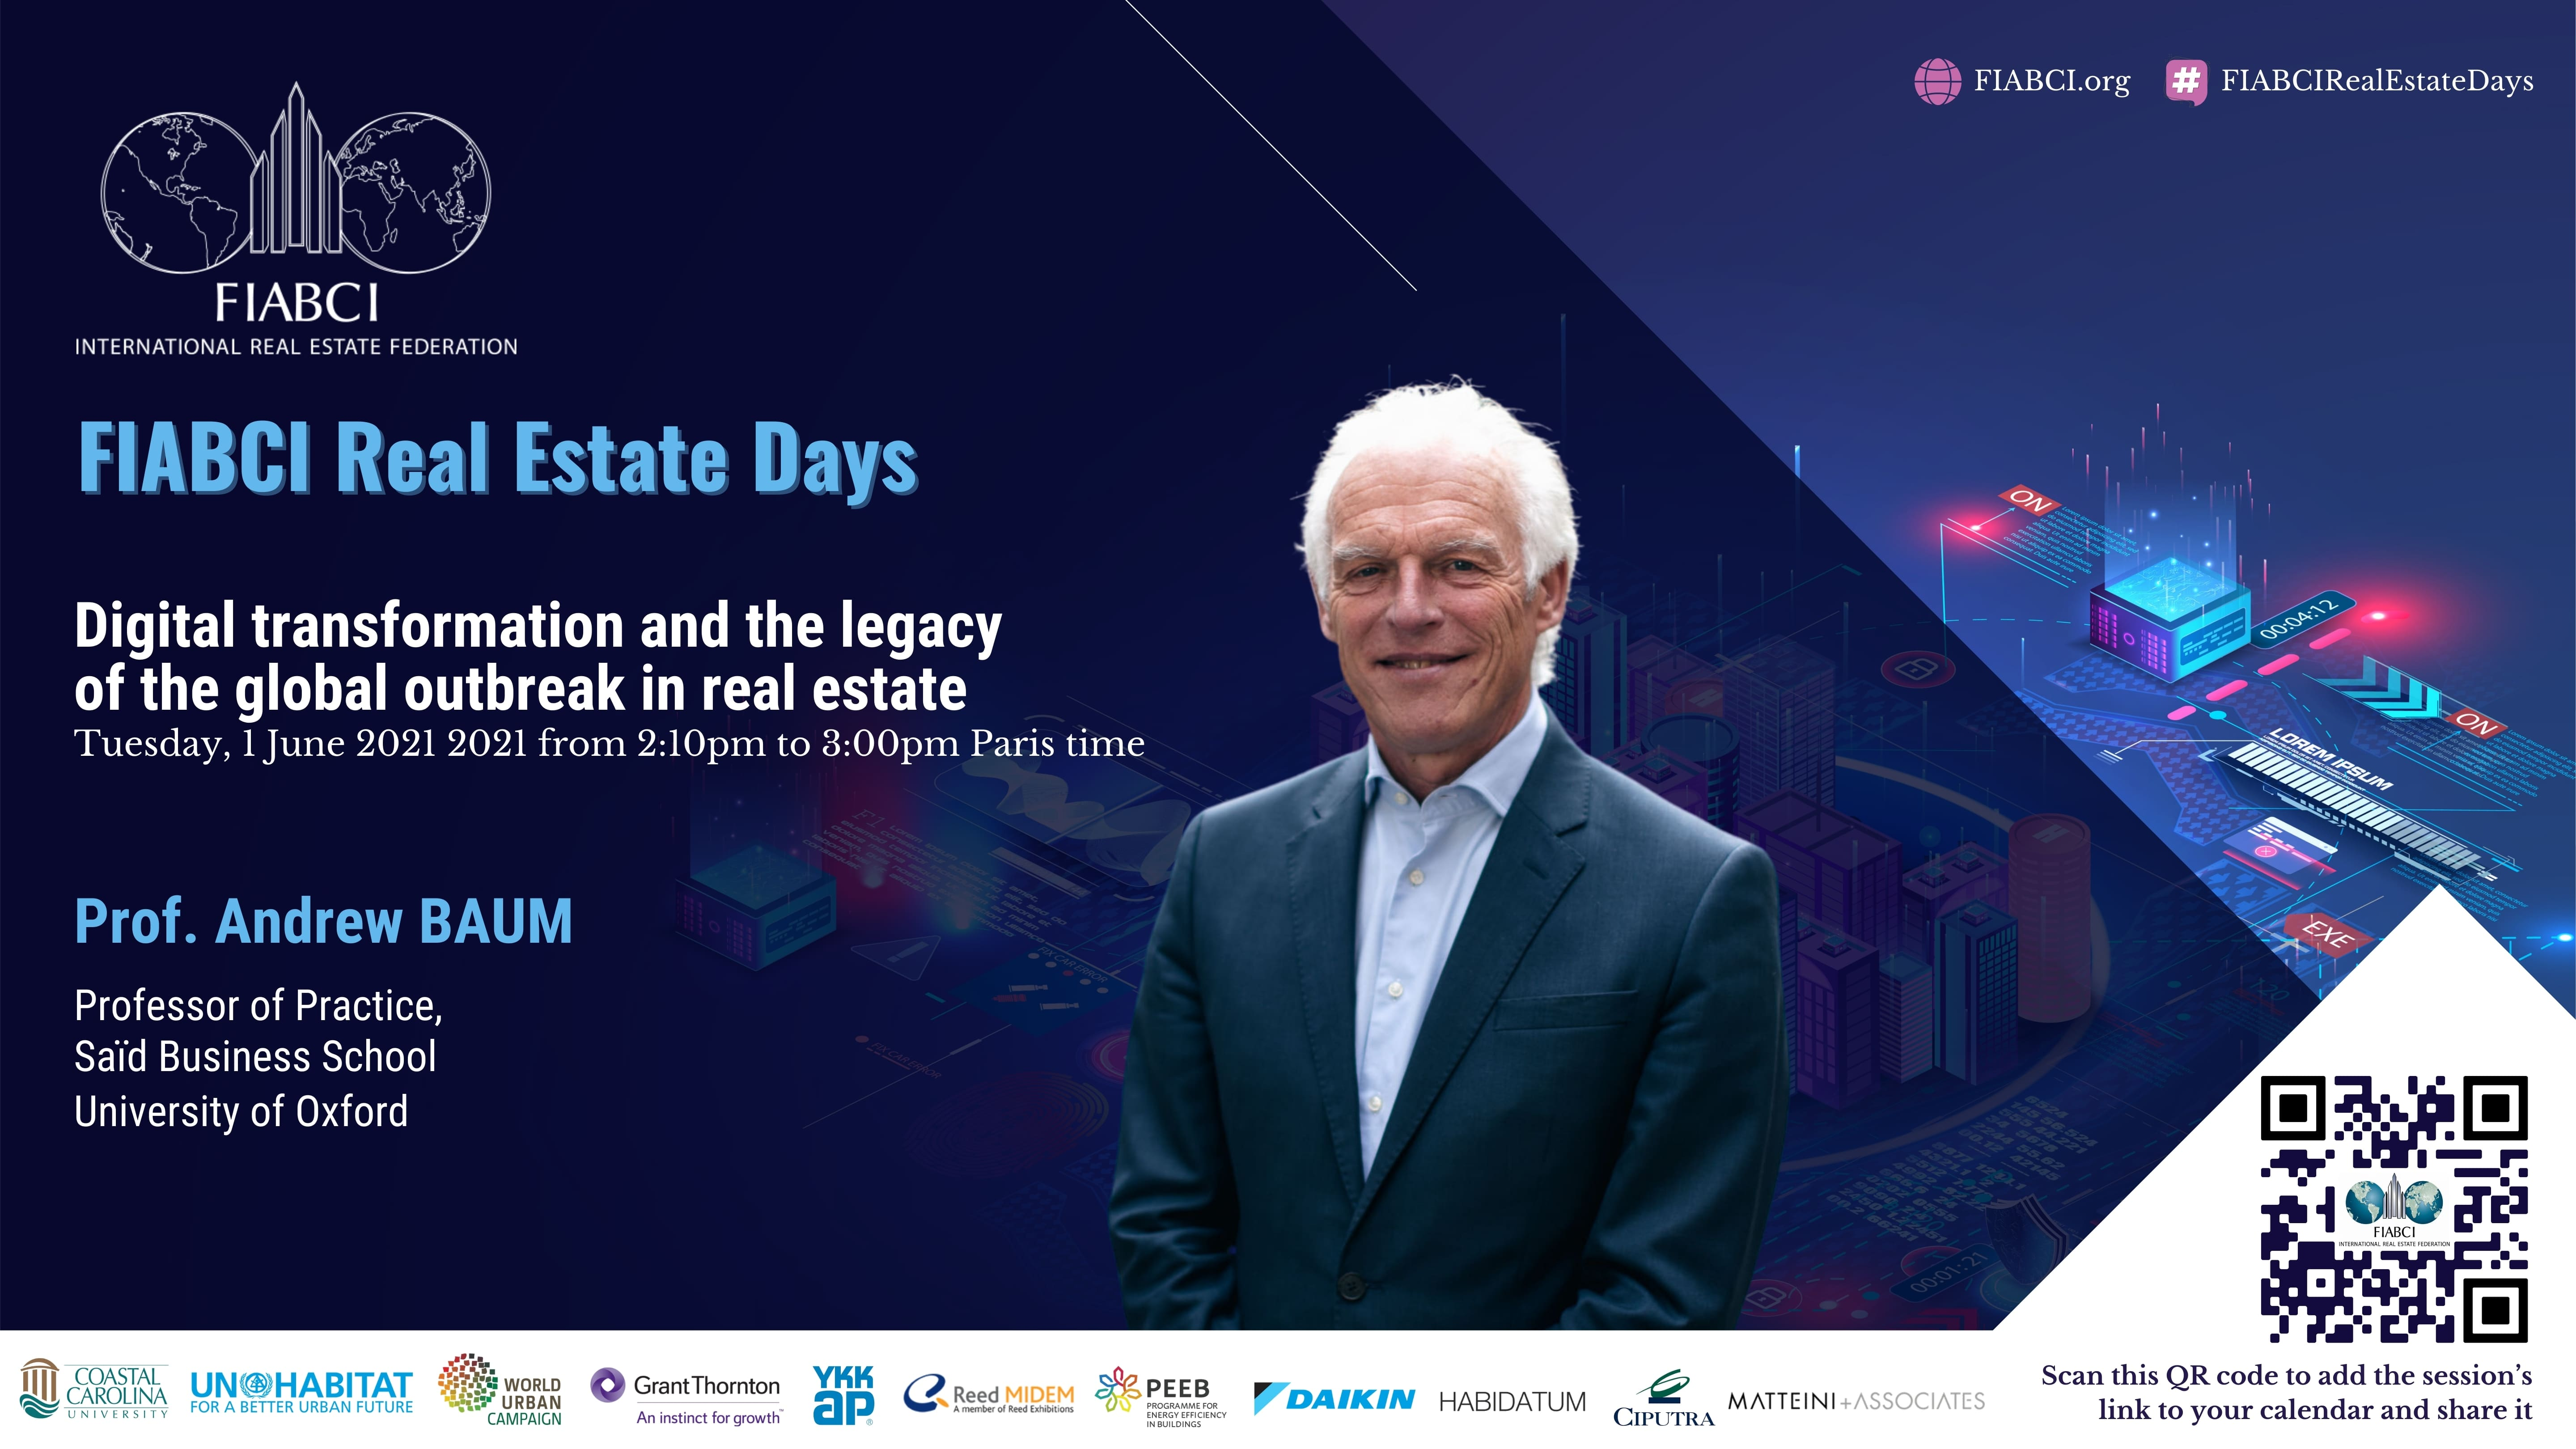 Day 1 - Tuesday 1 June FIABCI Real Estate Days